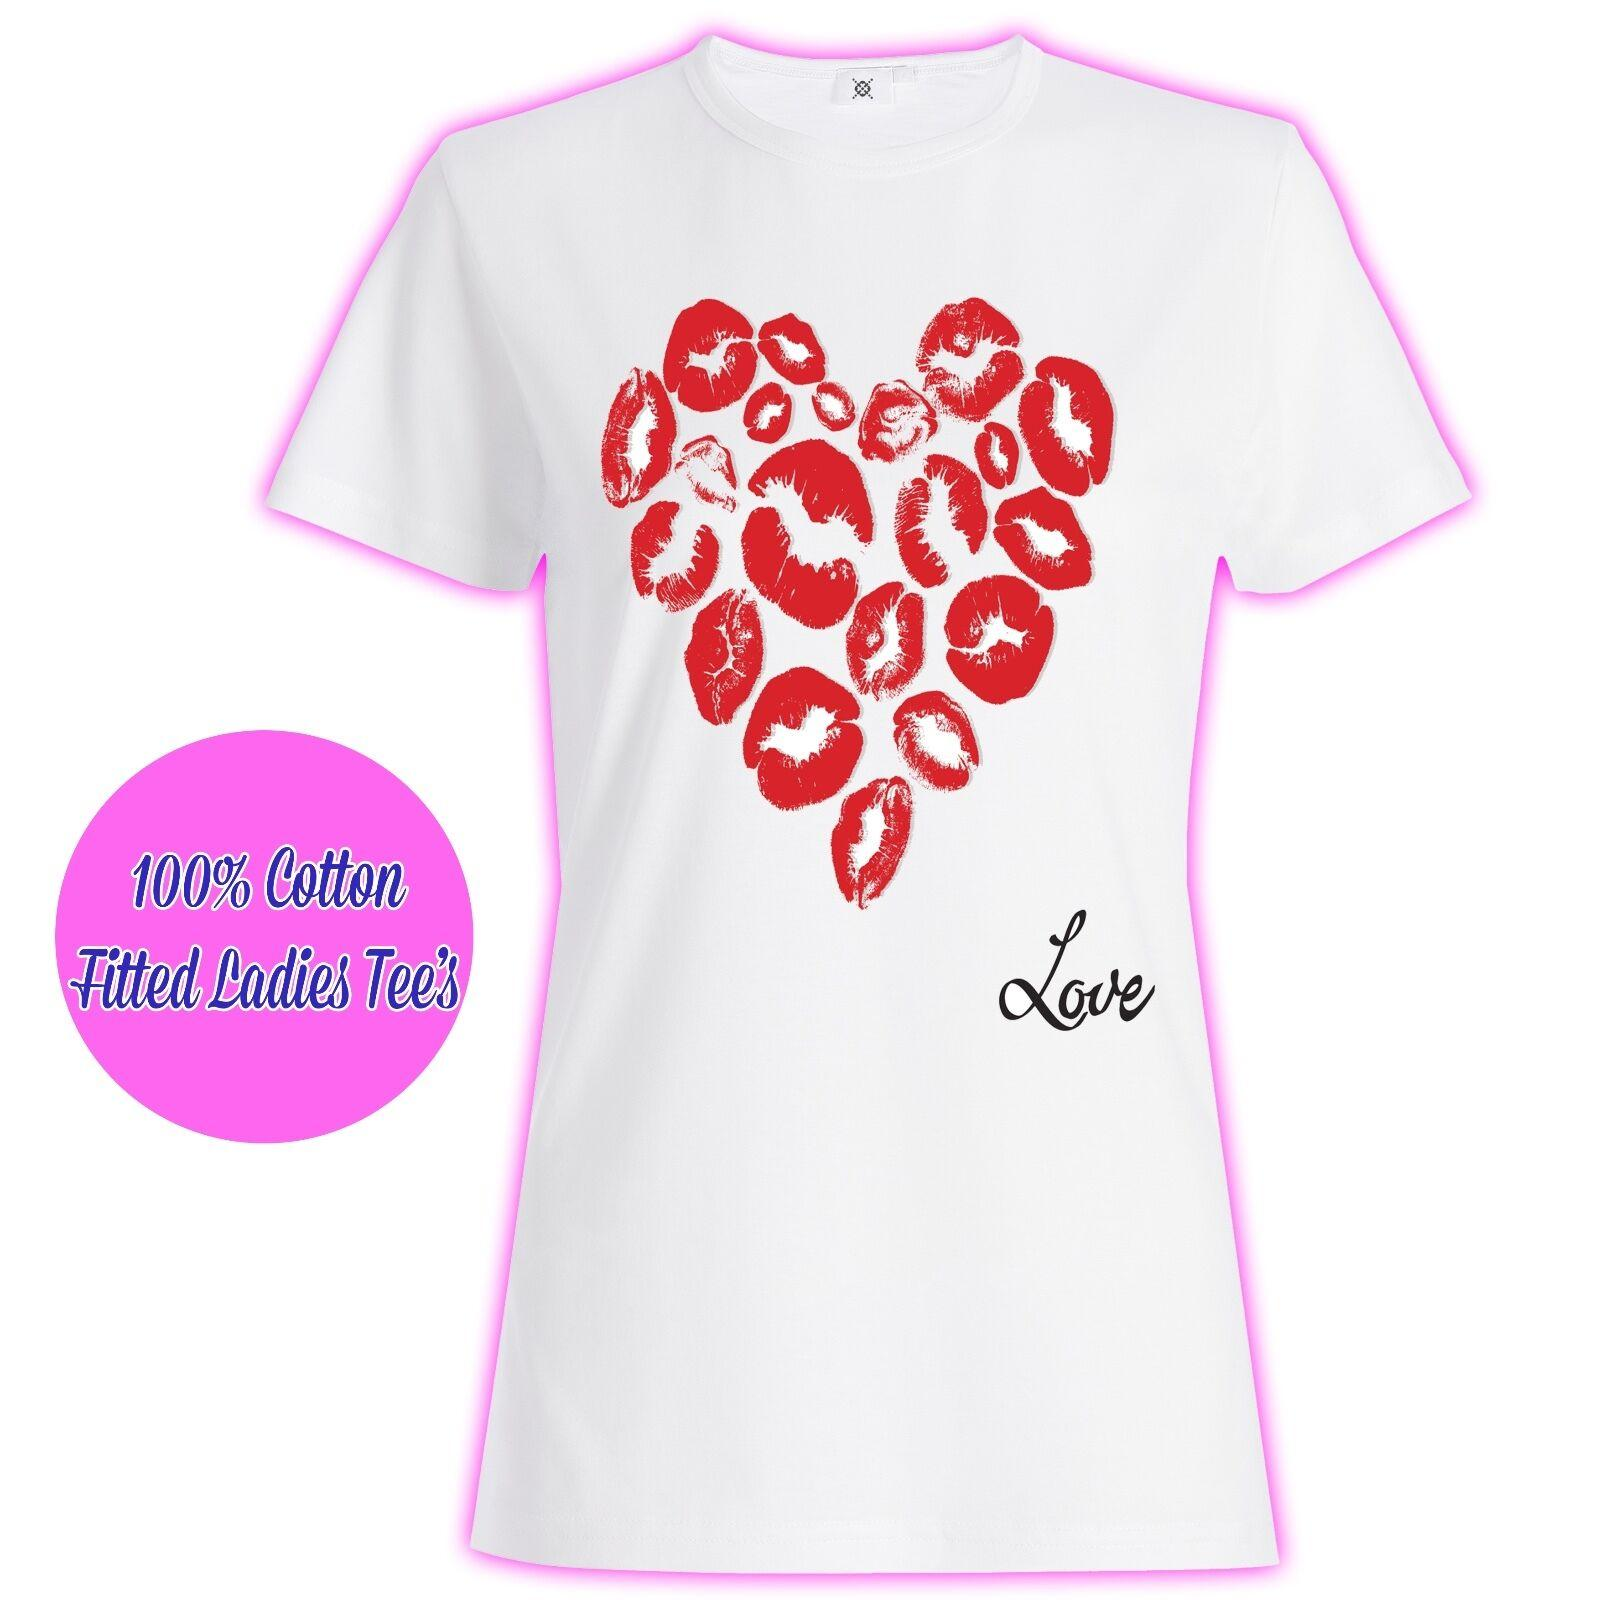 ca1a56c6b475 Womans Ladies Girls Valentines Princess Love Slogan Kisses Glitter T Shirt  Men Women Unisex Fashion Tshirt Black Buy Online T Shirts Make Tee Shirts  From ...